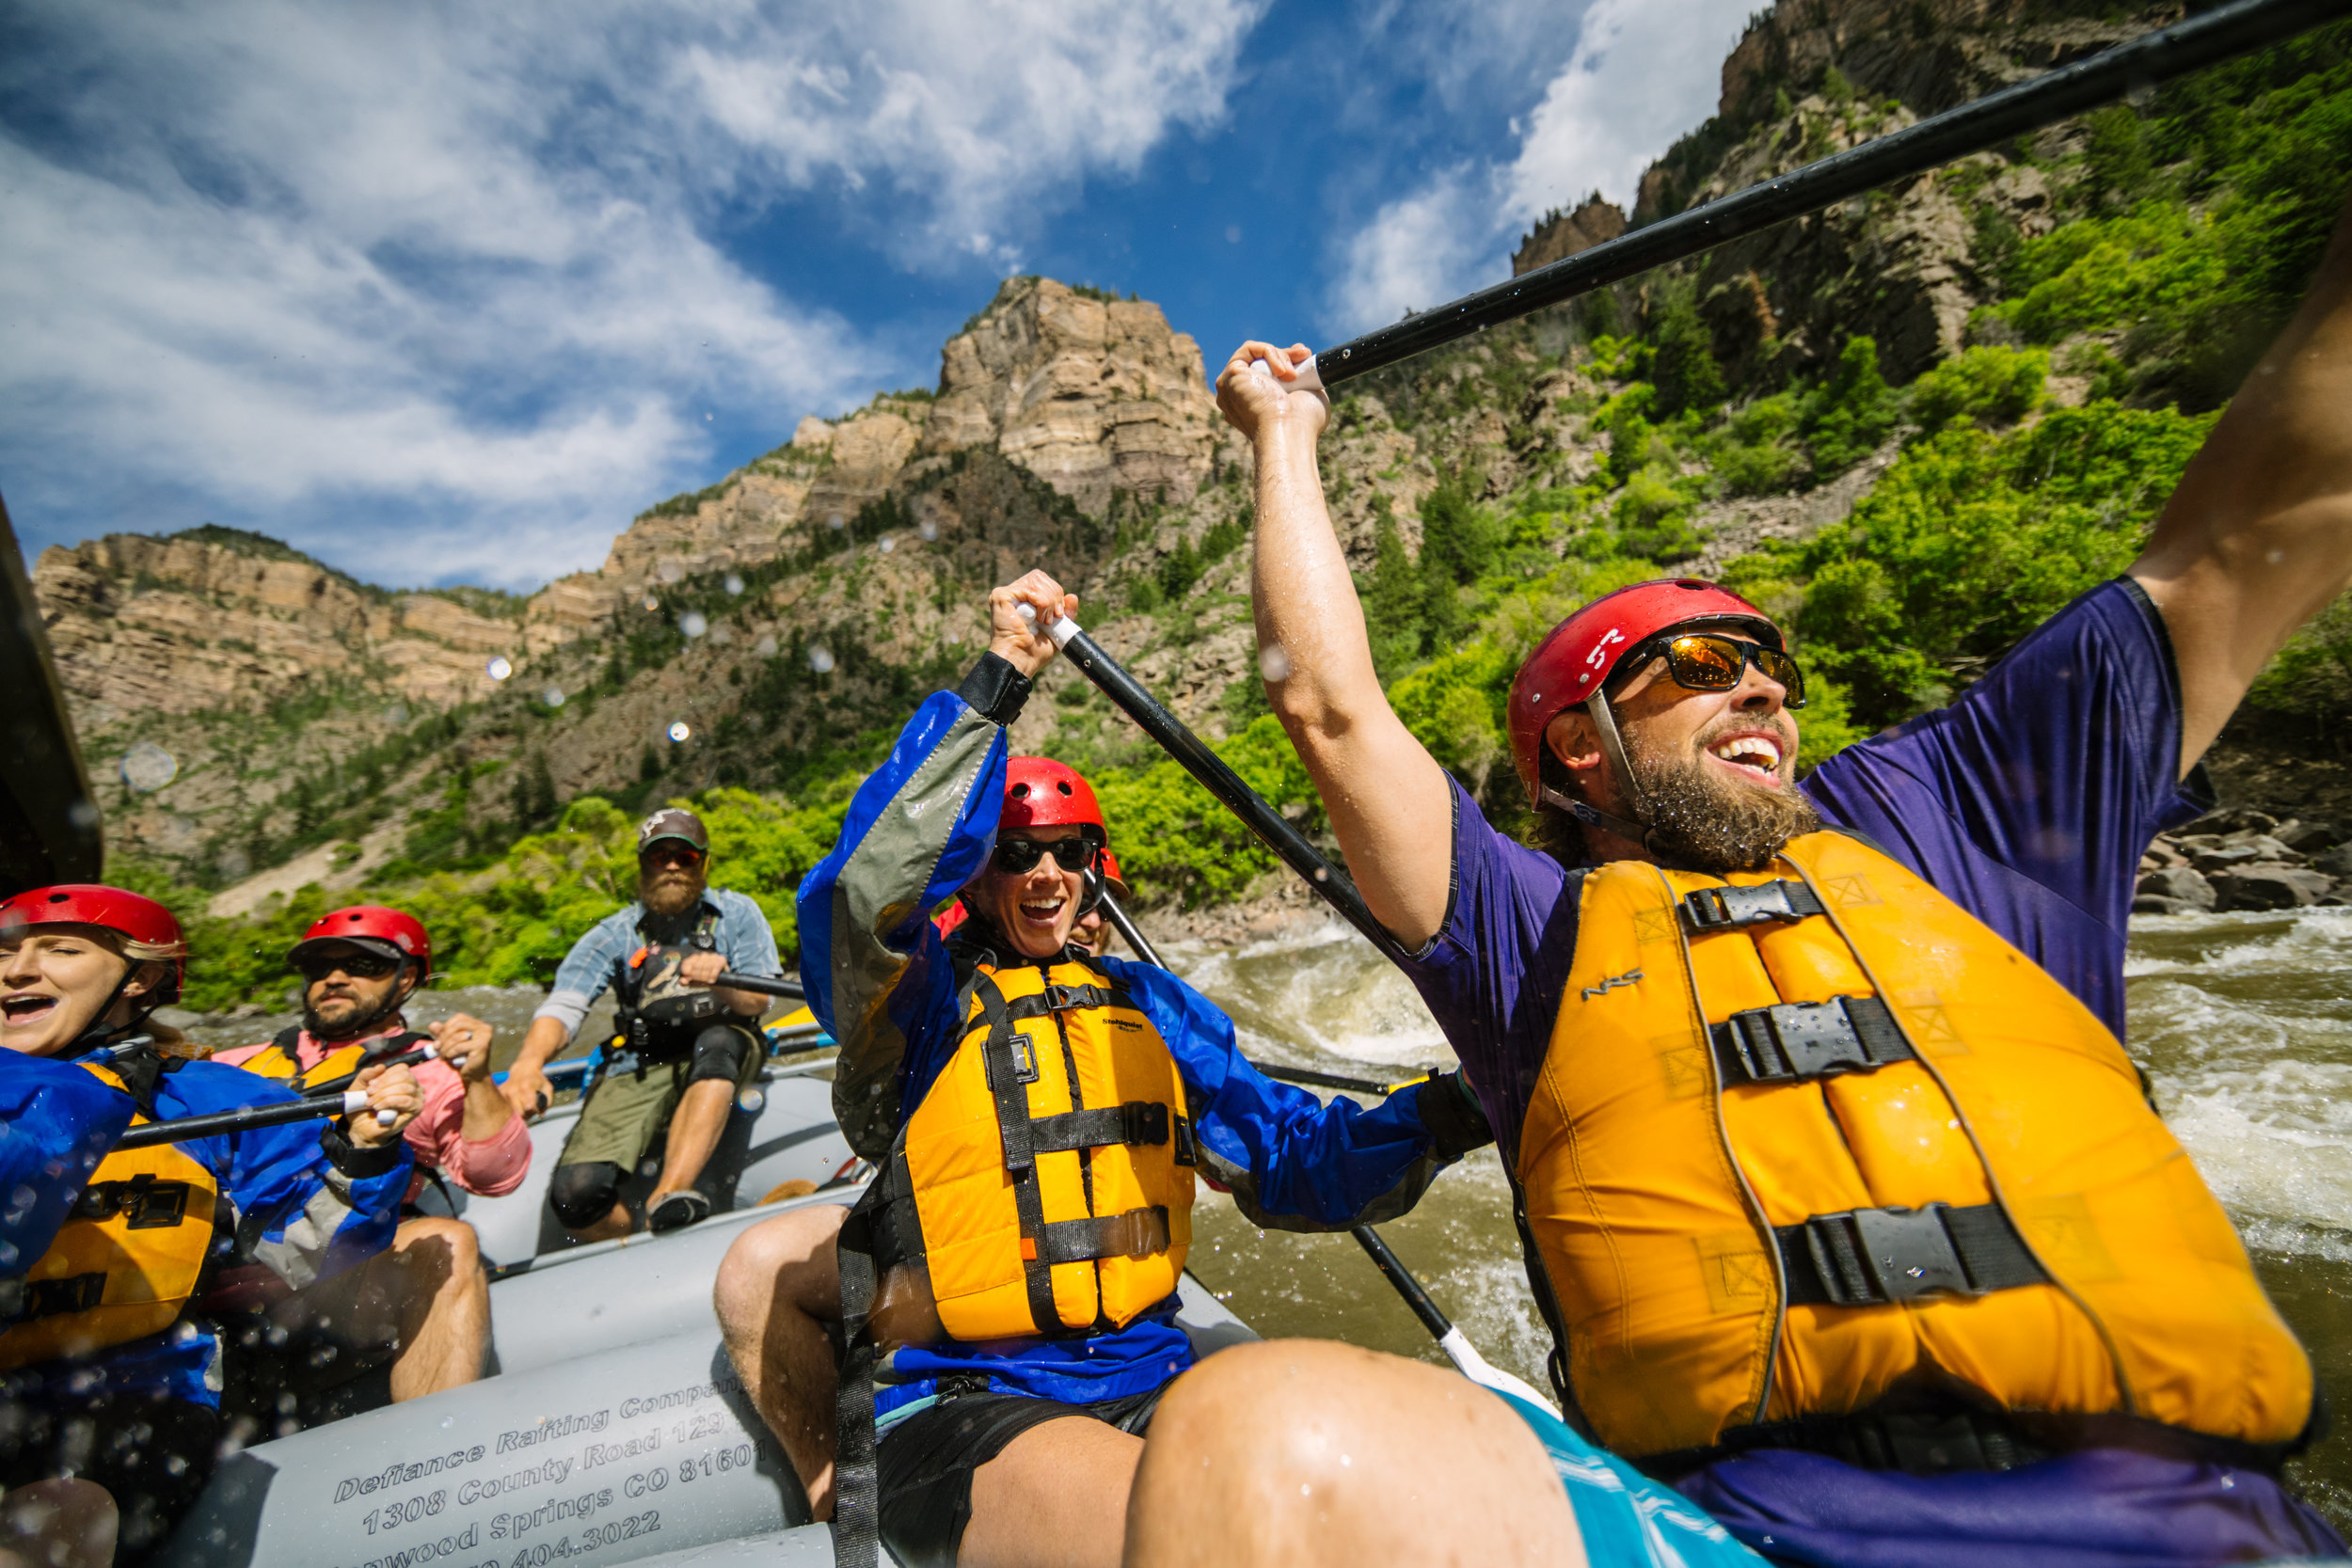 PERFECT FOR: - First-timers, COUPLES, and experienced paddlers short on time.